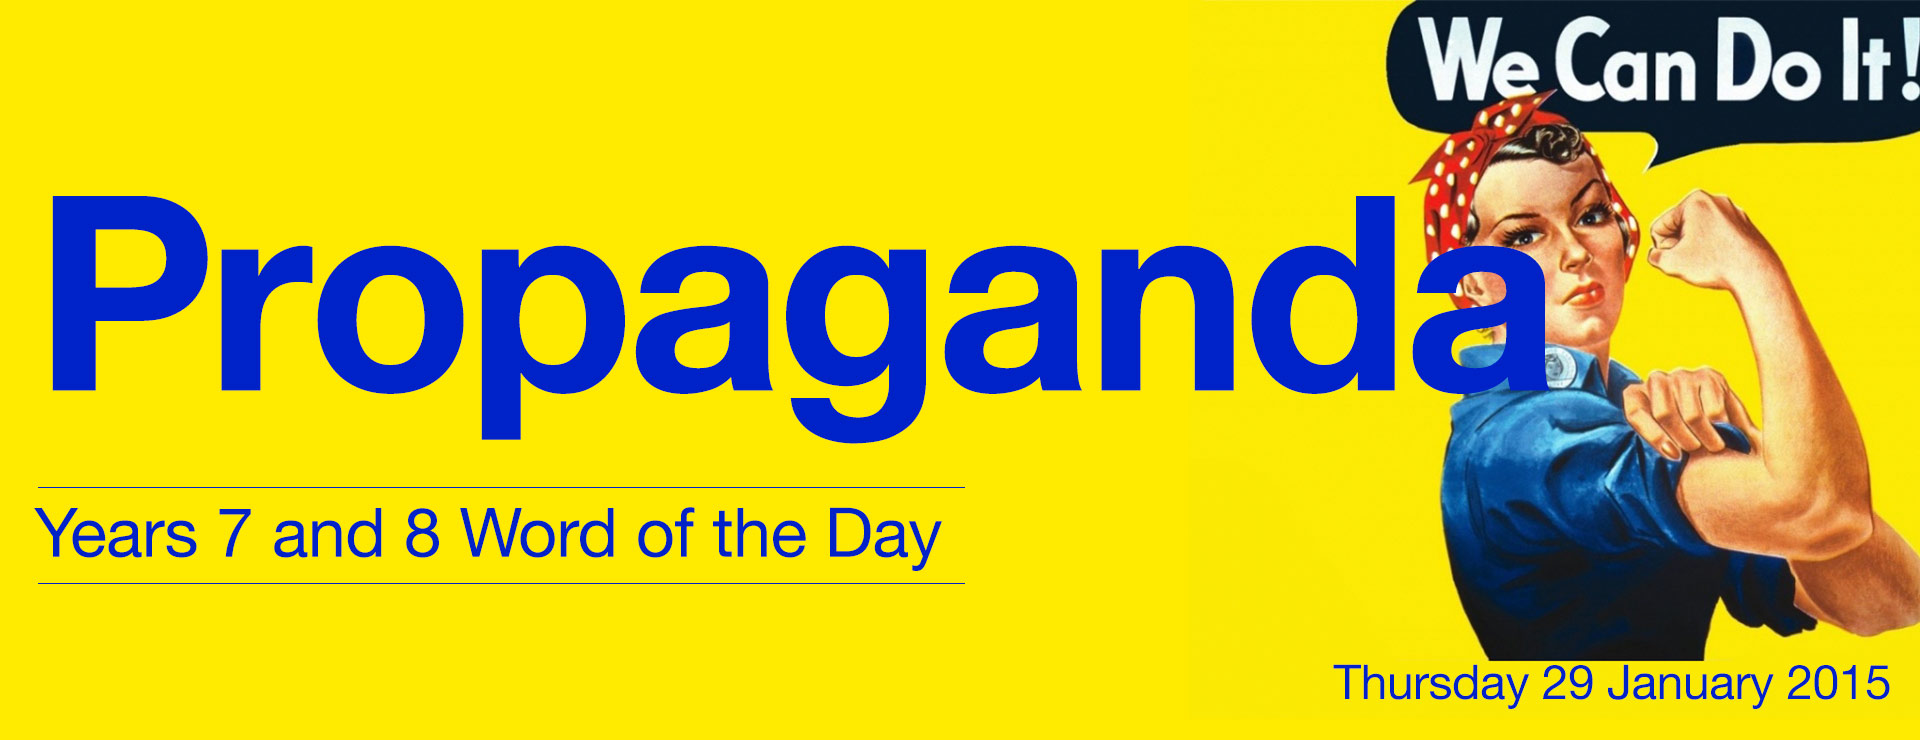 Word-of-the-Day-90.jpg